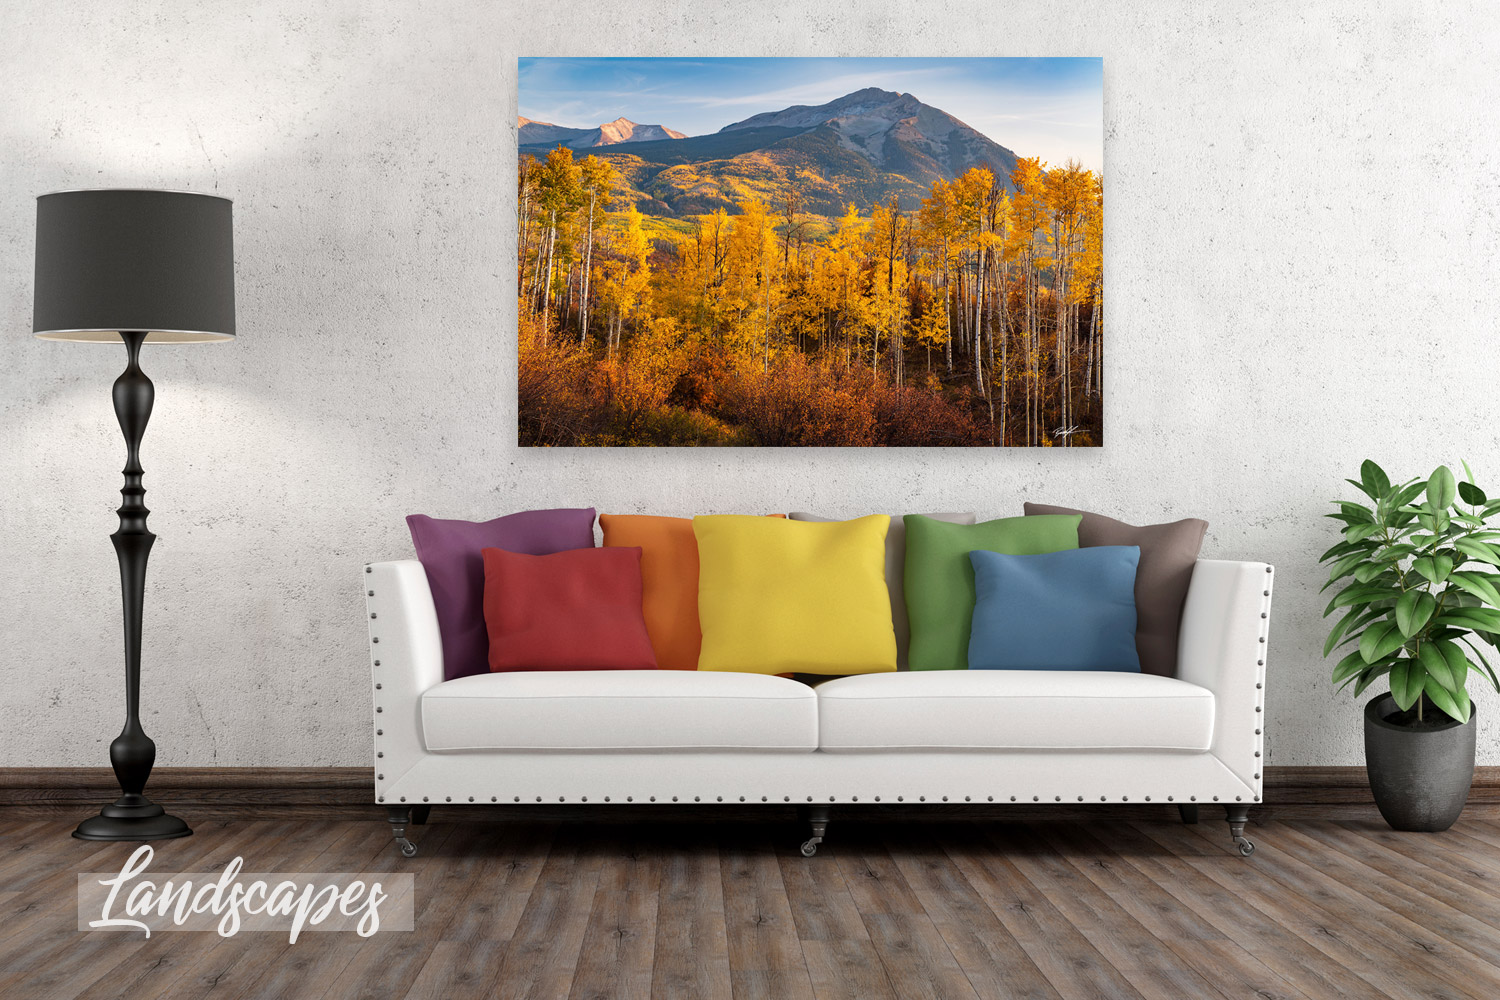 Home and Office Decor - Landscape Photography